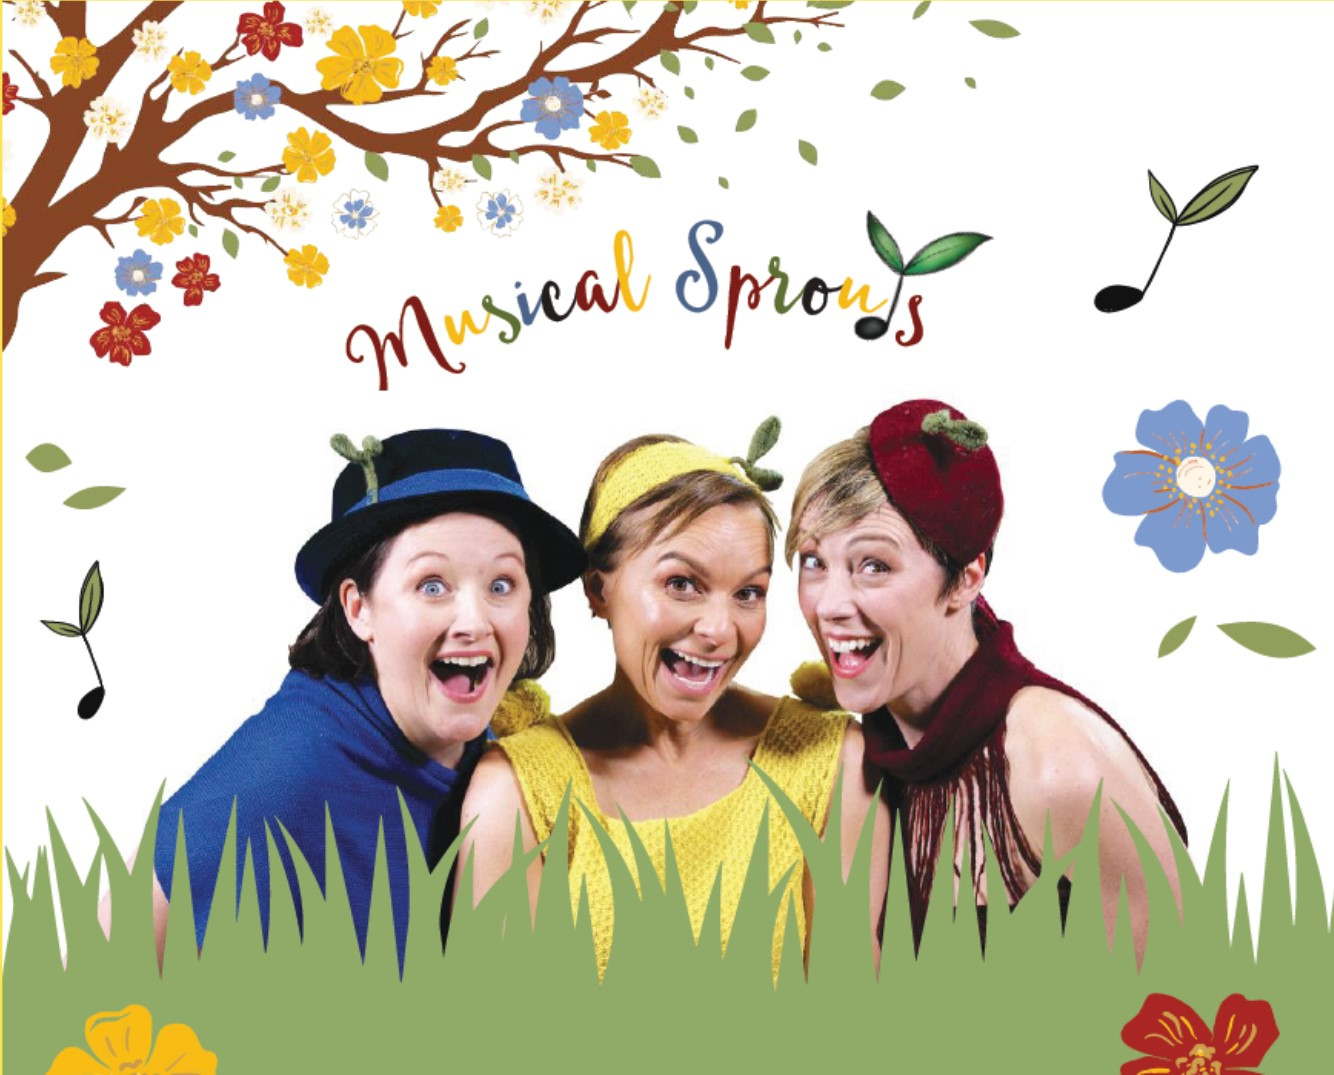 Musical Sprouts: A fresh, fun and interactive new children's theatre show is coming to Melbourne!